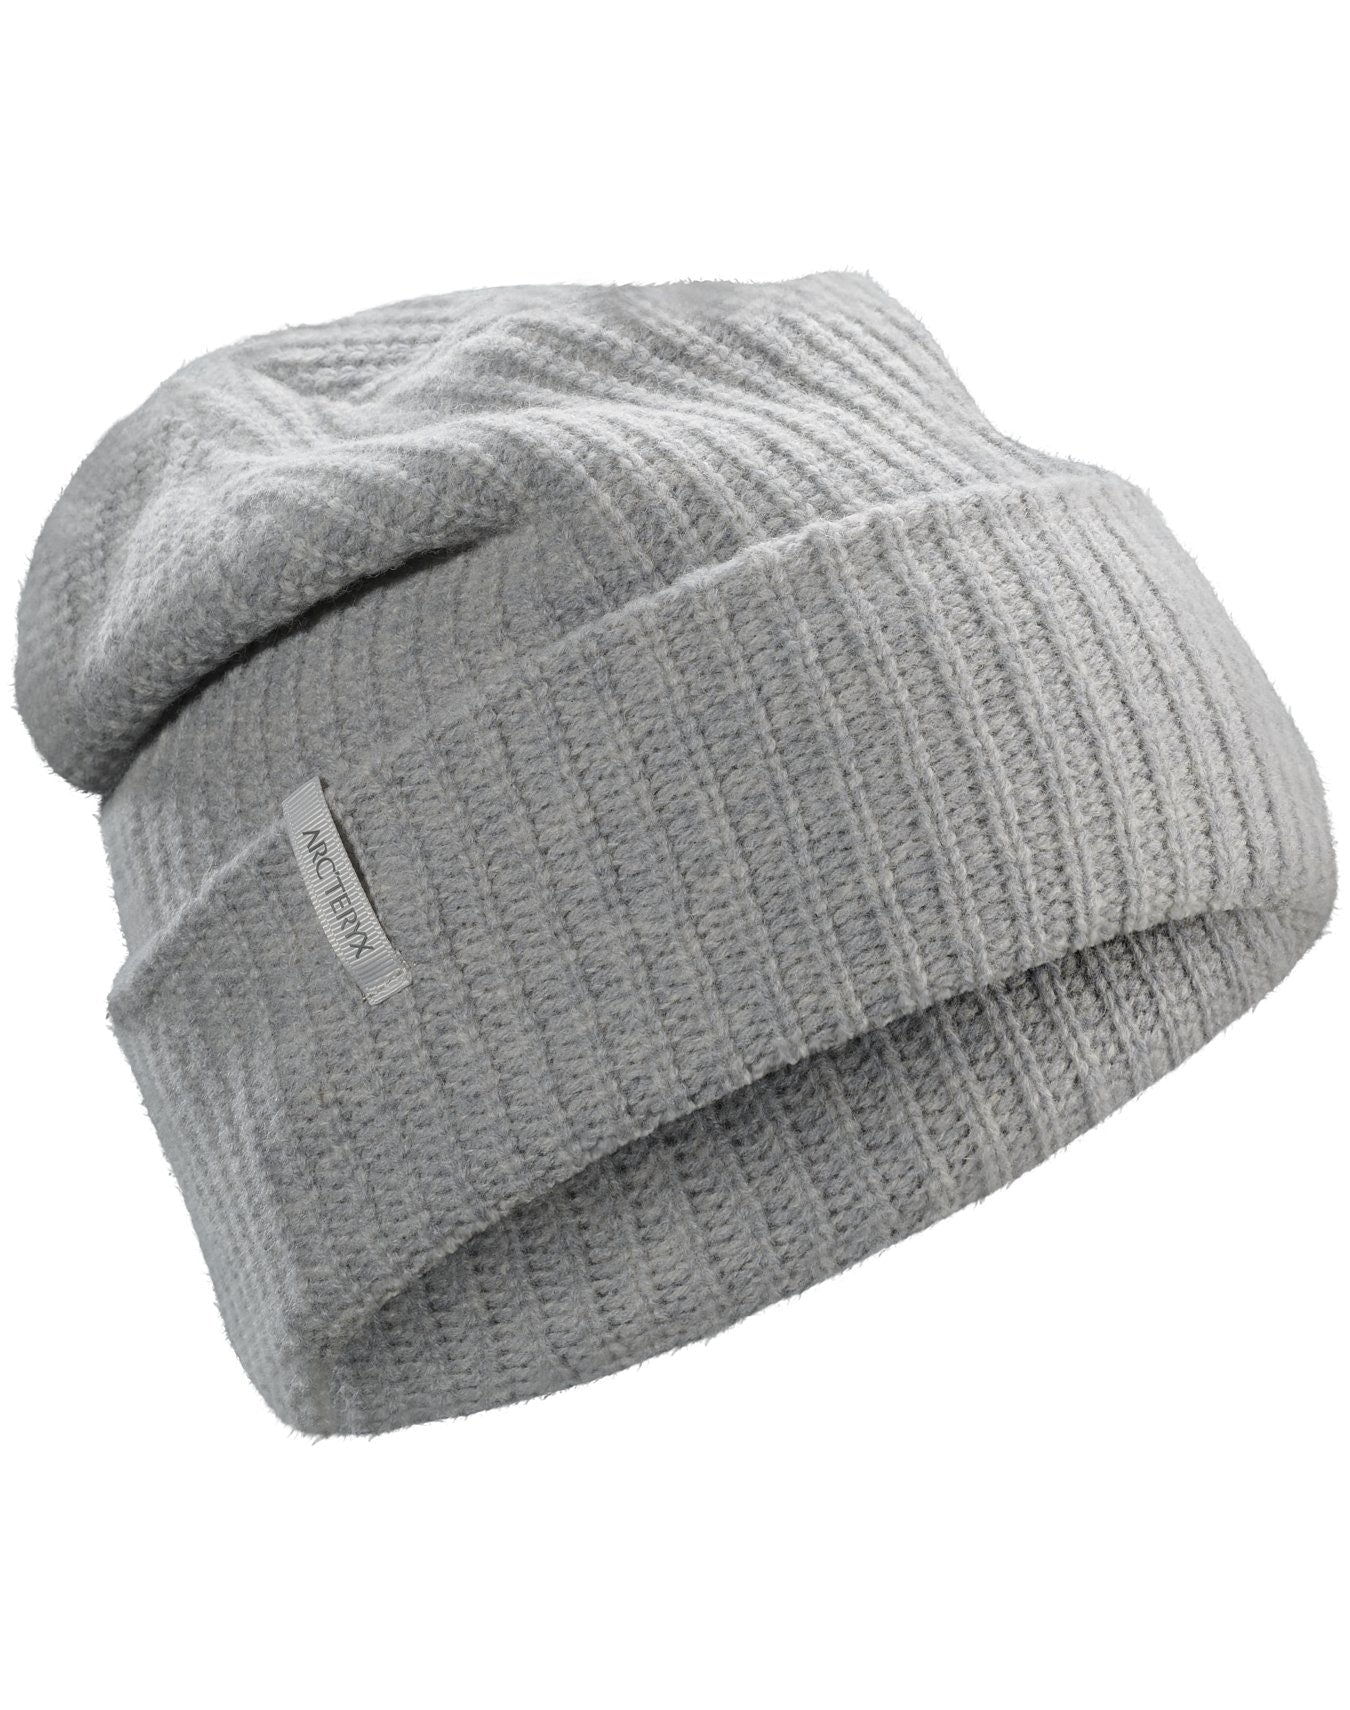 ARC'TERYX TOQUES ULU HEATHER O/S CHUNKY KNIT TOQUE